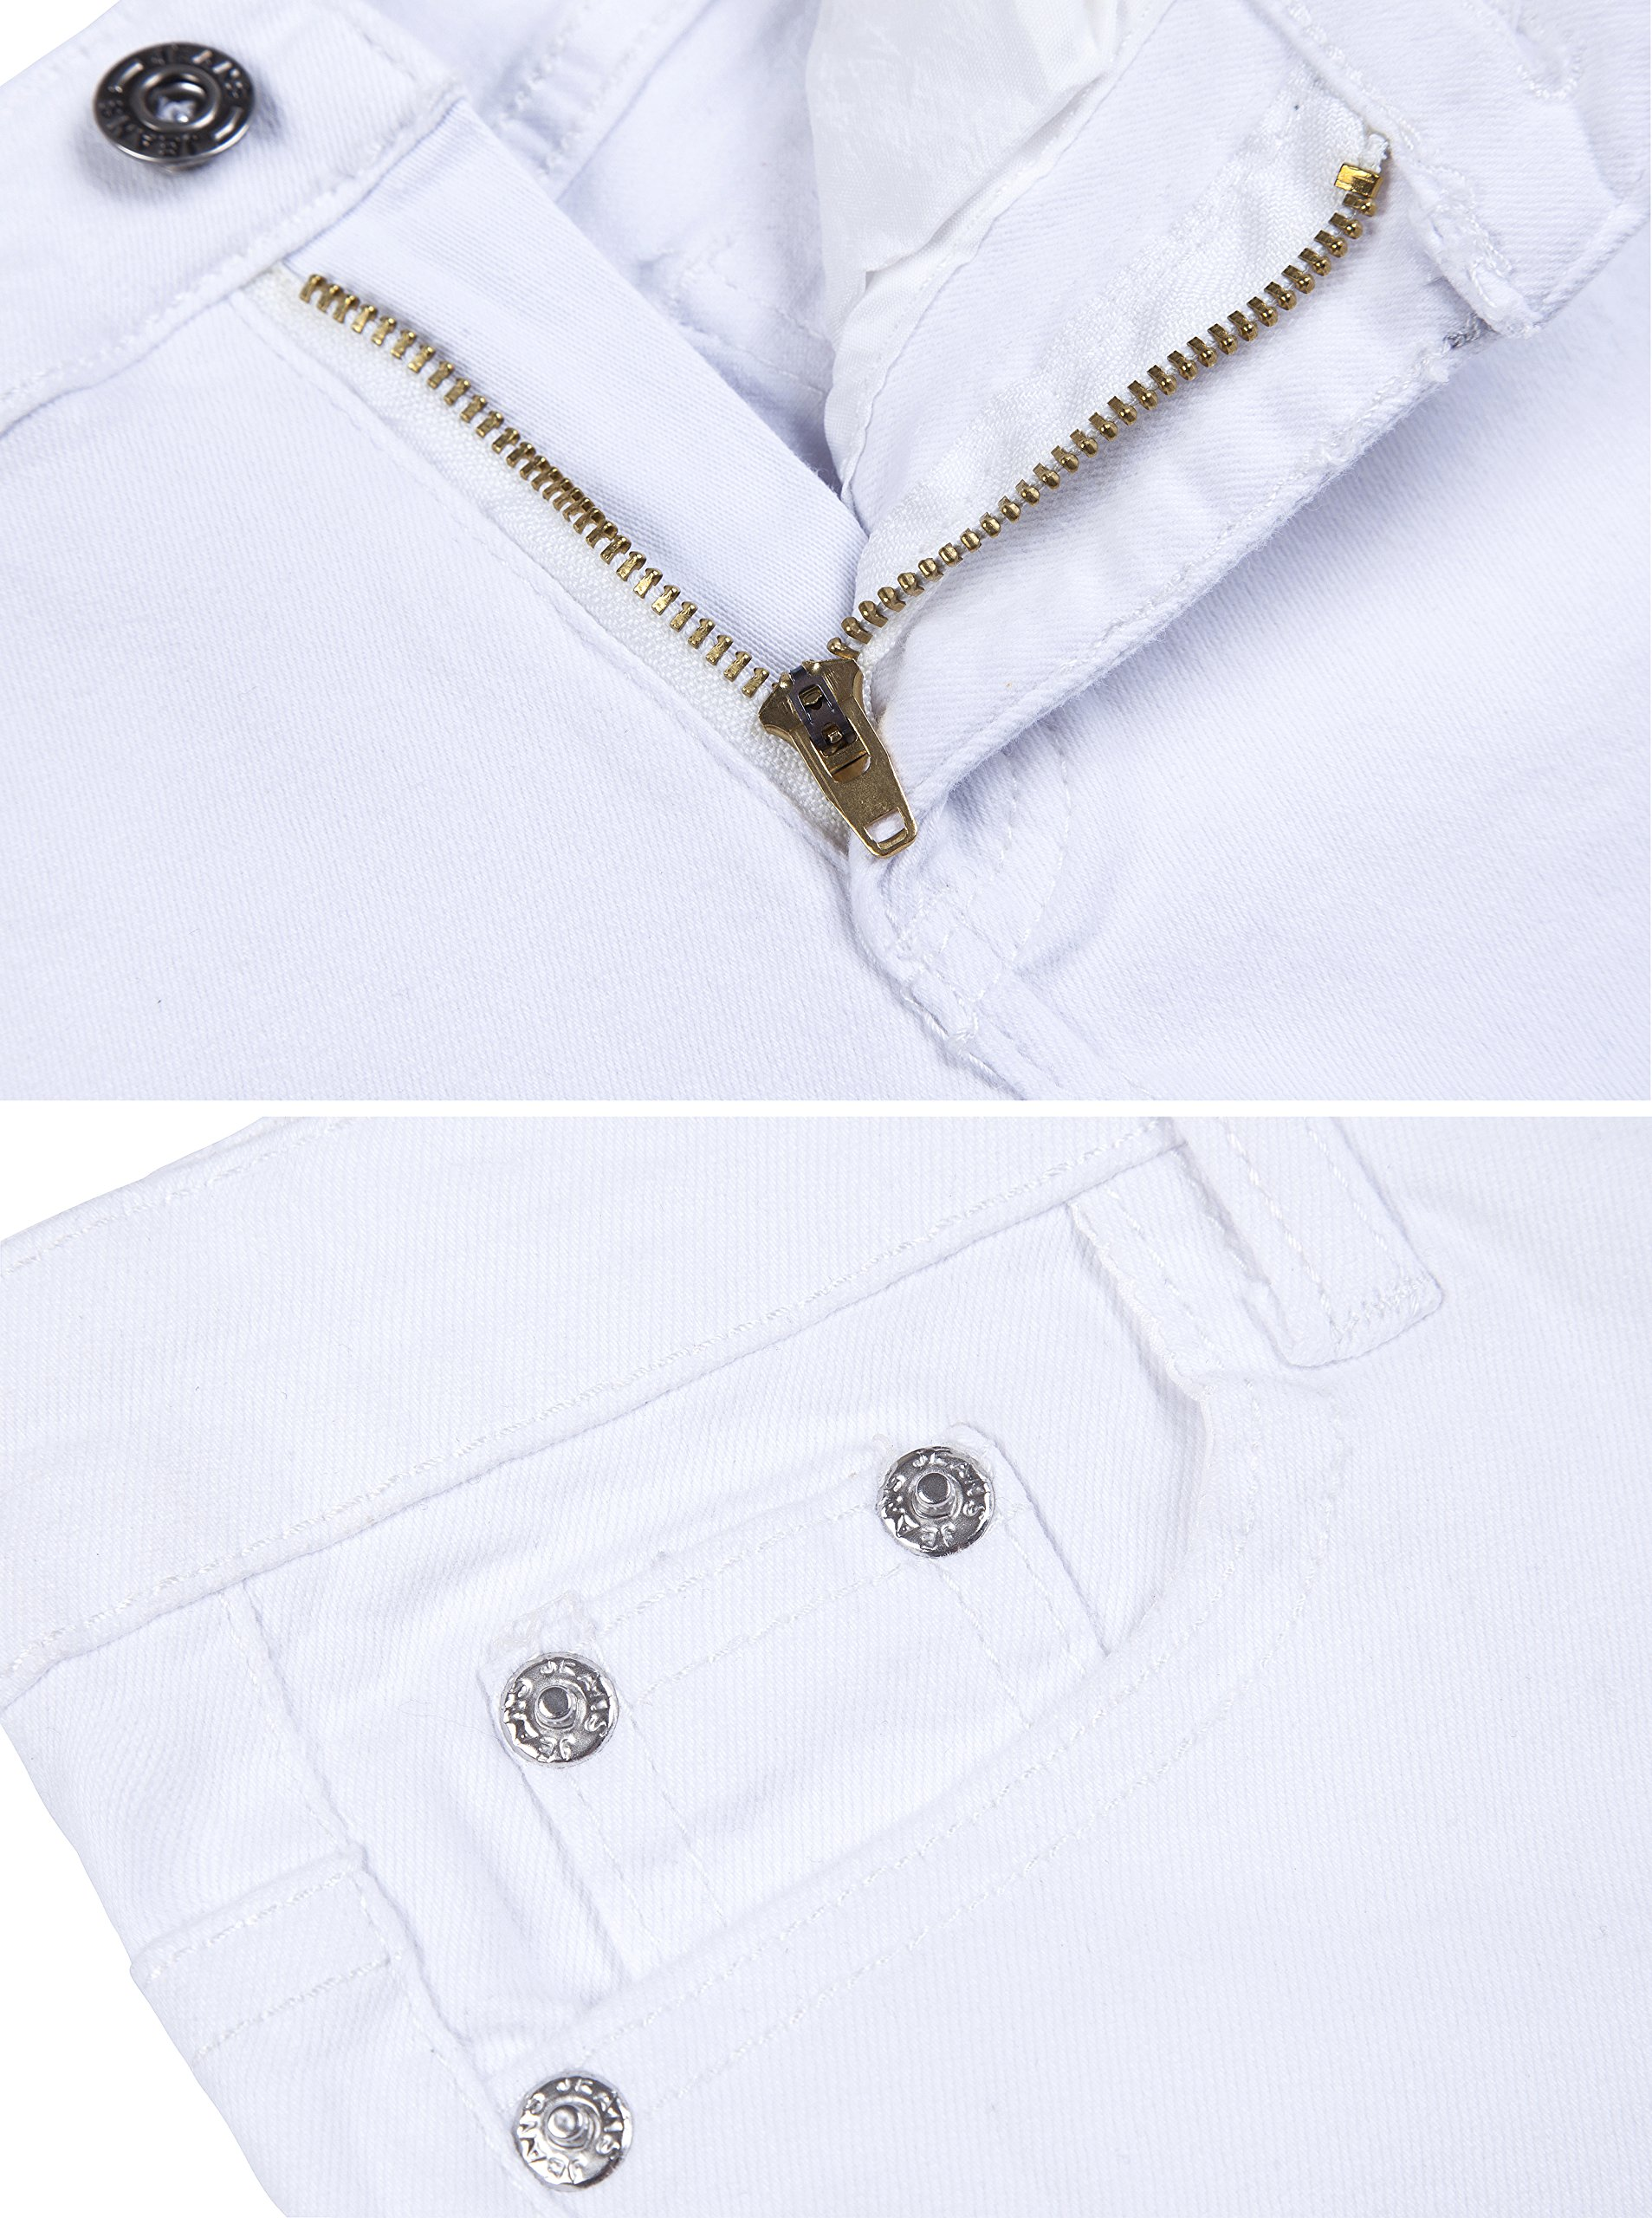 Girls Fashion Skinny Fit Jeans Distressed Ripped Hole Denim Pants White 7t by GALMINT (Image #3)